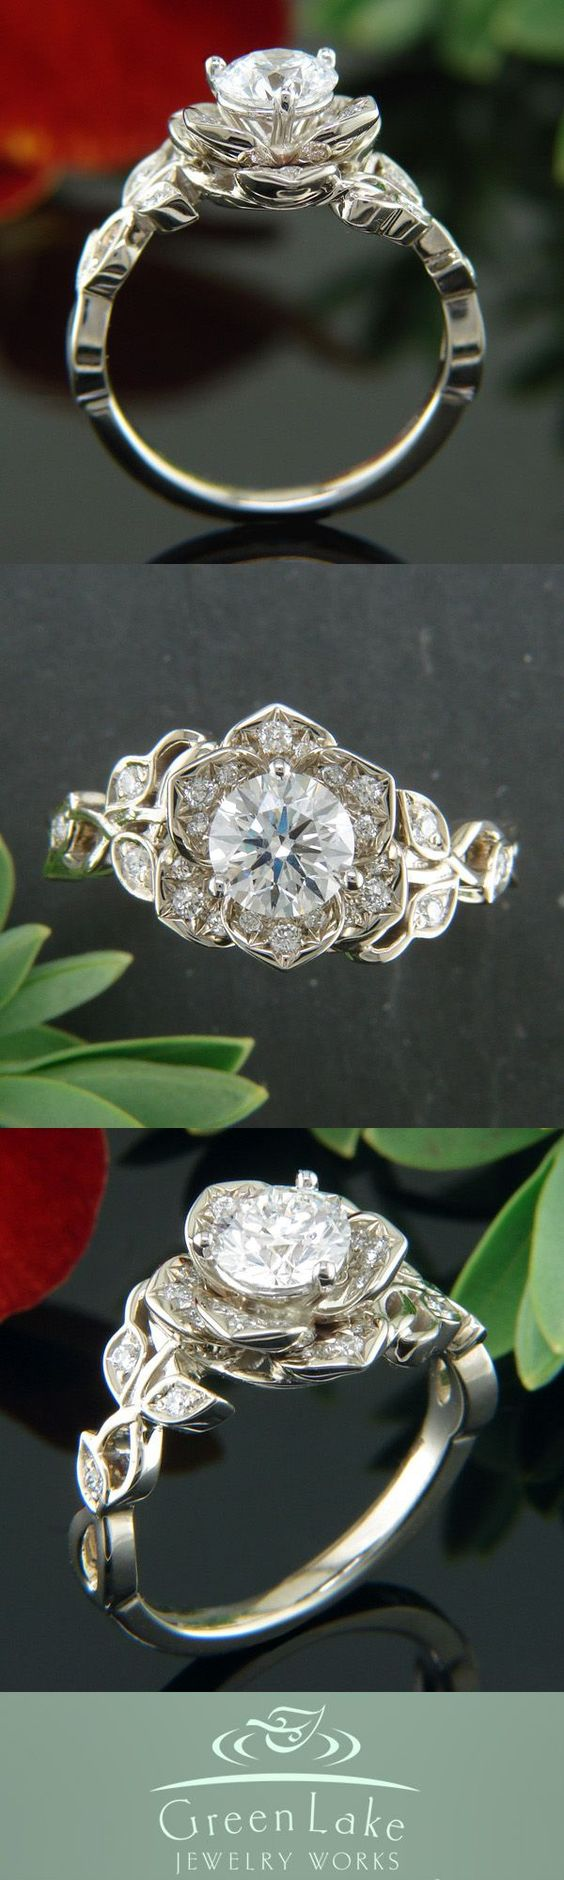 lotus and vine inspired warm white gold engagement ring